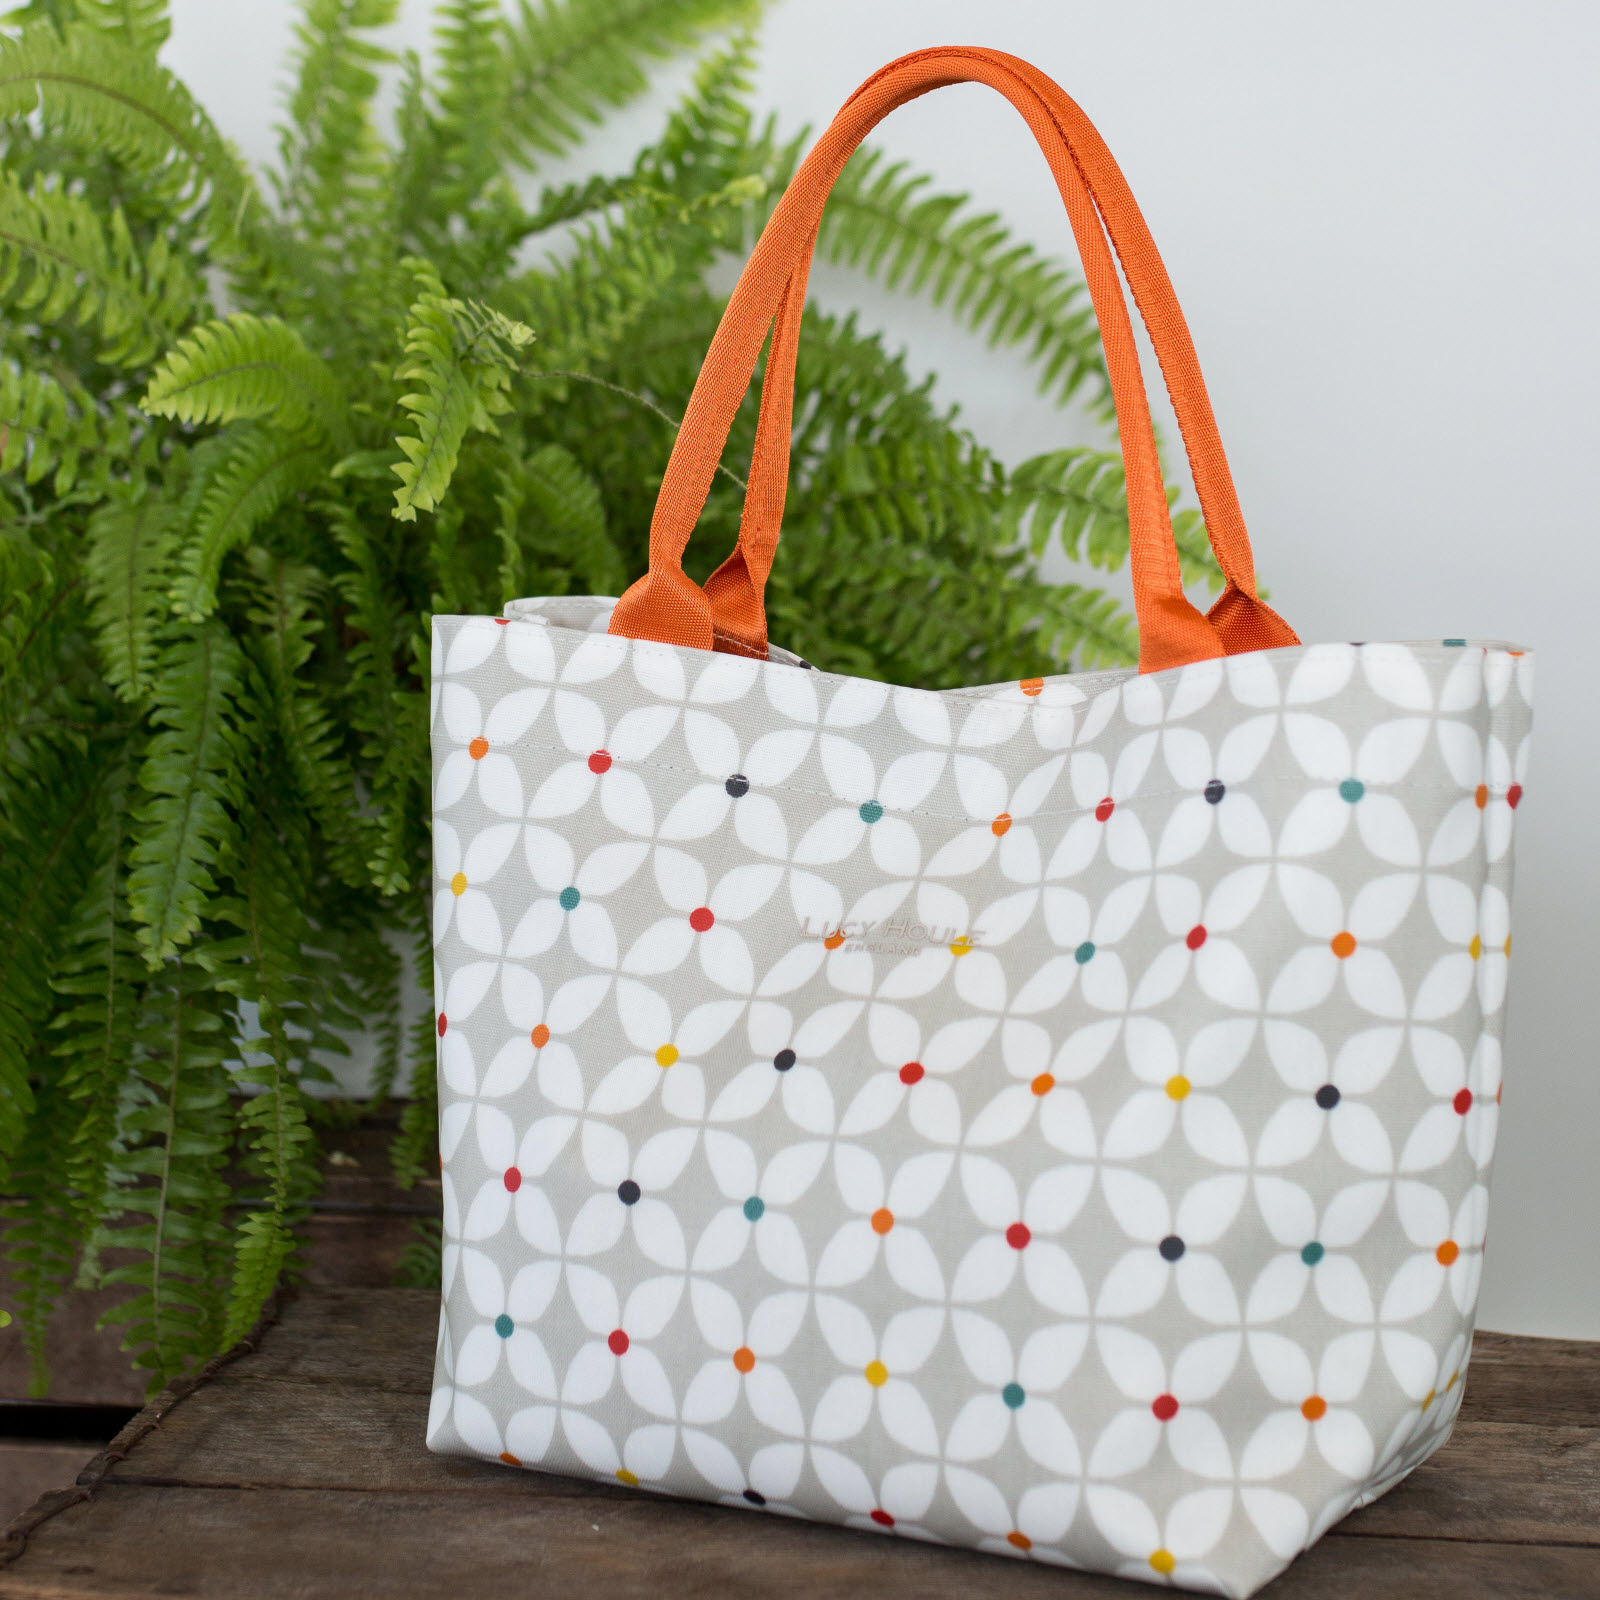 Modern Daisy Taupe Small Grab Bag with Orange Handles